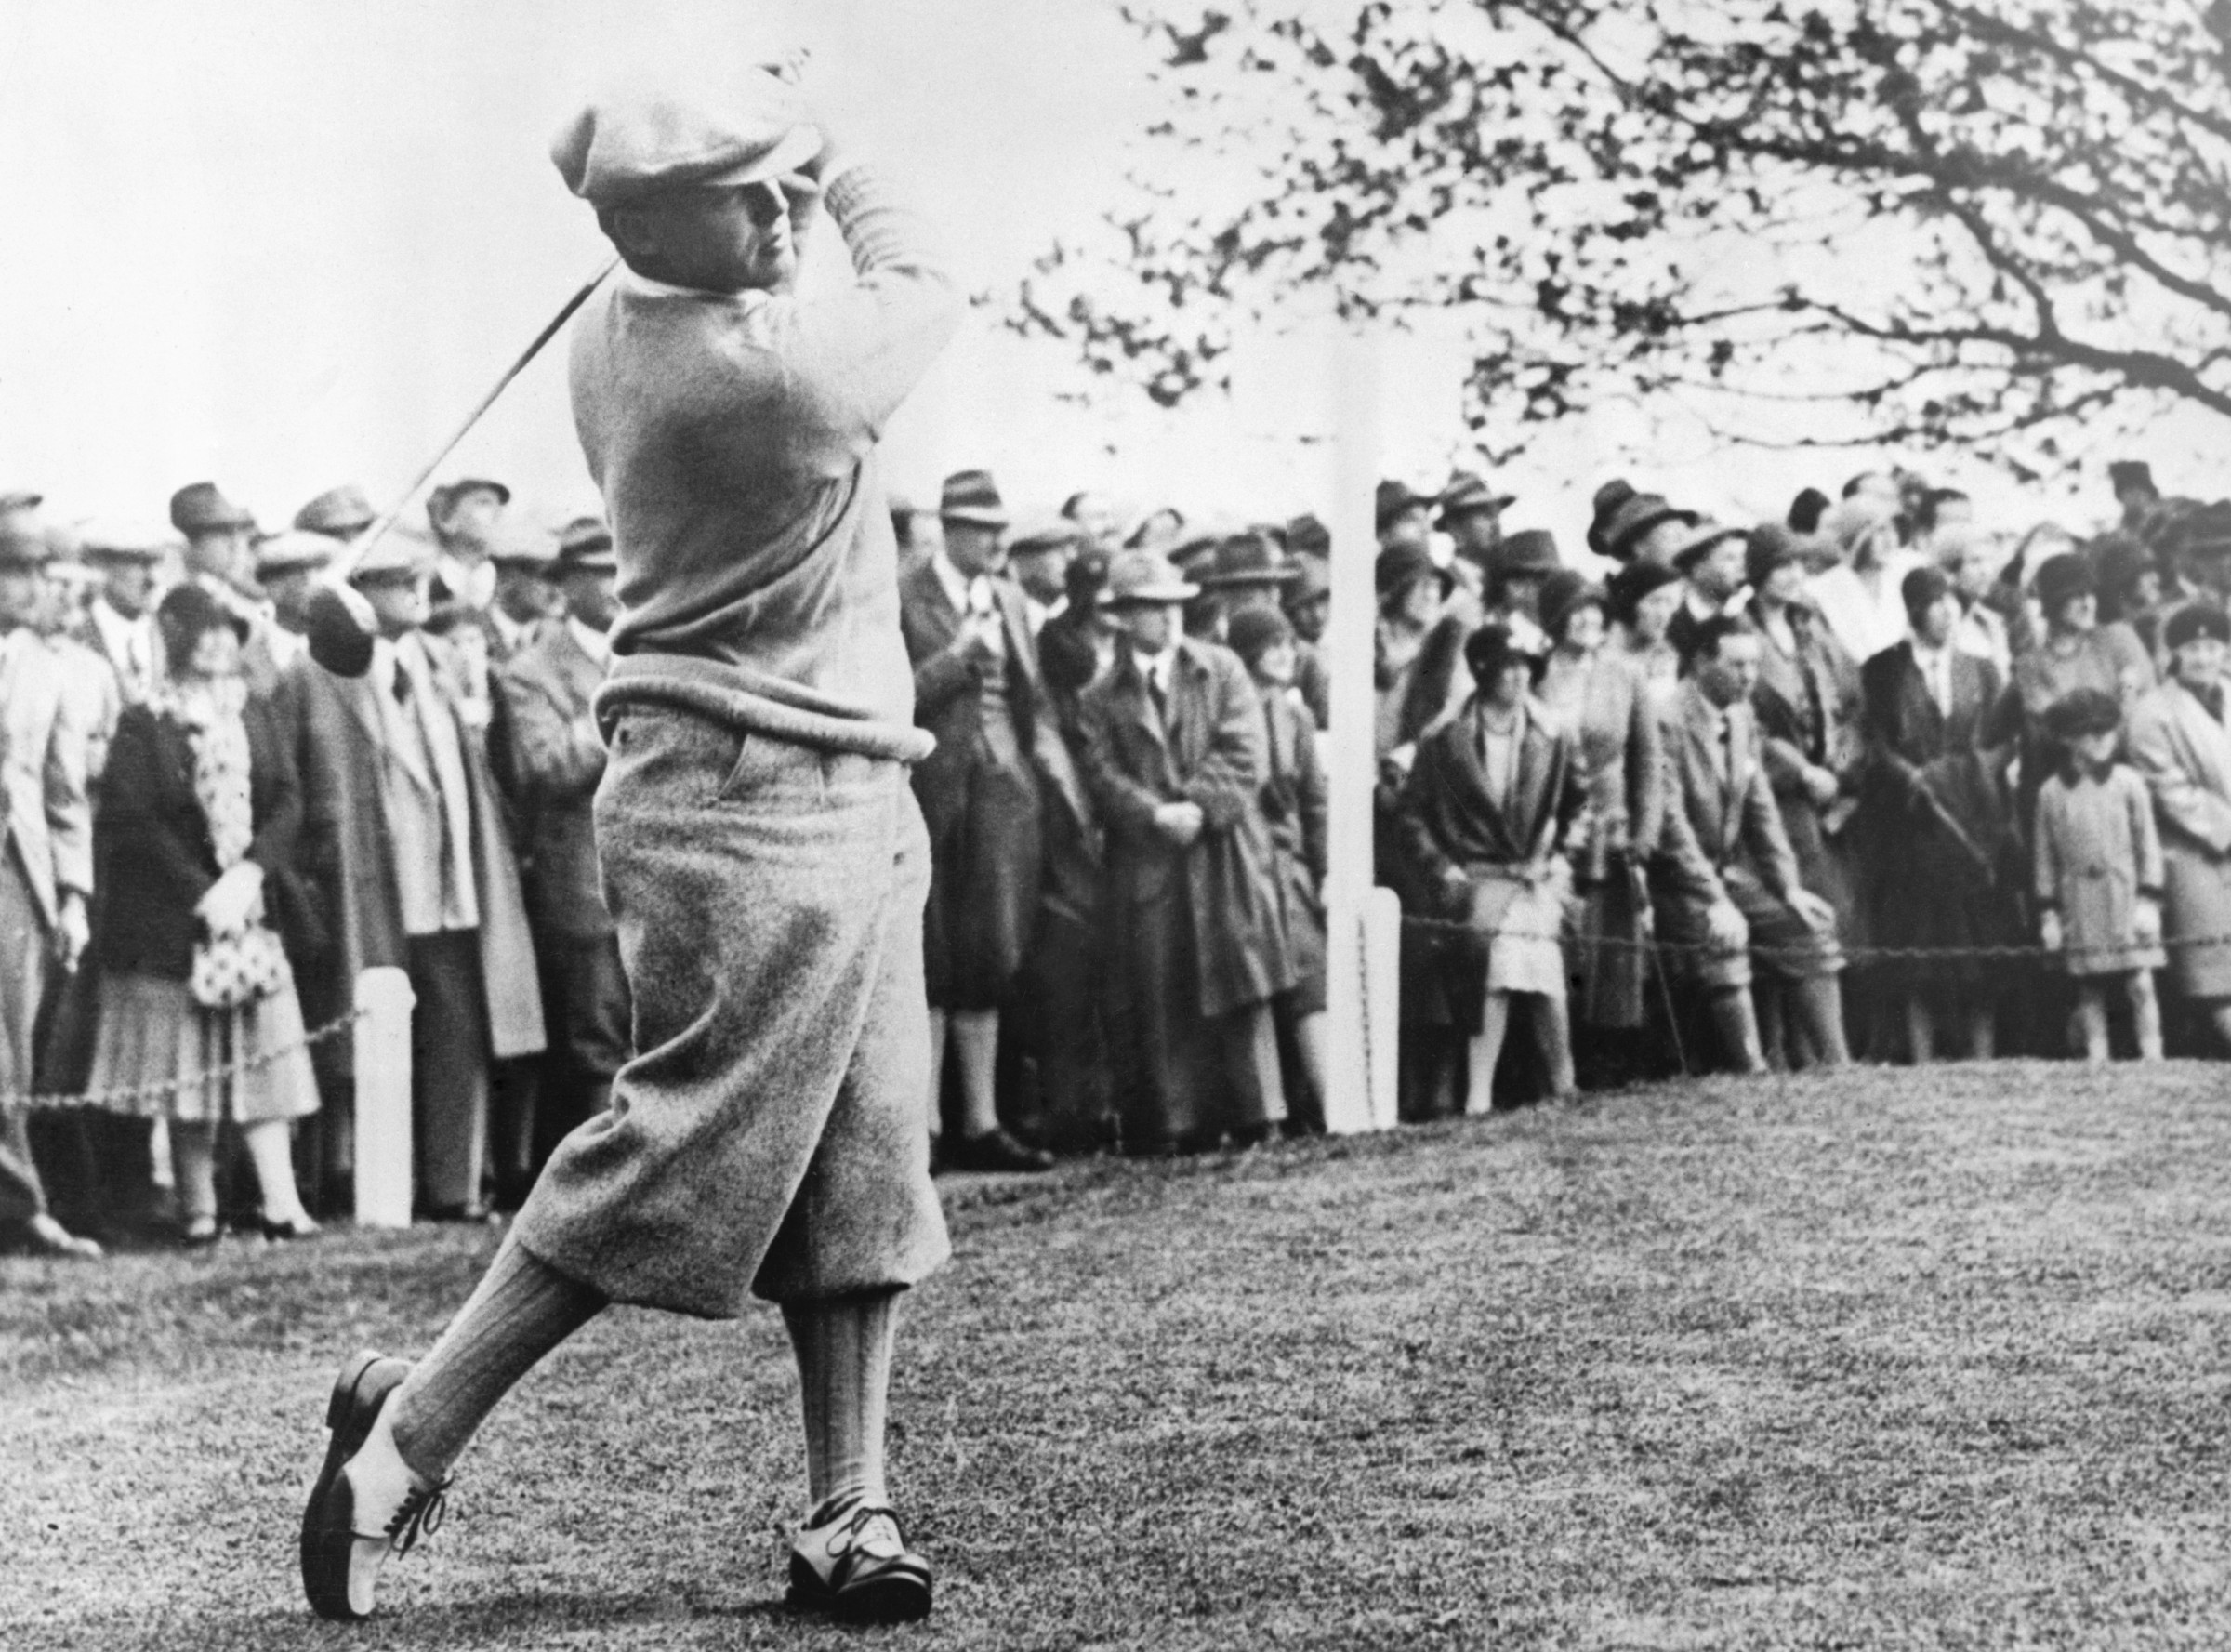 """ca. 1900s --- Original caption: Bobby Jones (b. 1902) American golfer and only player ever to make the """"Grand Slam"""". Photograph full-length swinging golf club. --- Image by © Corbis"""